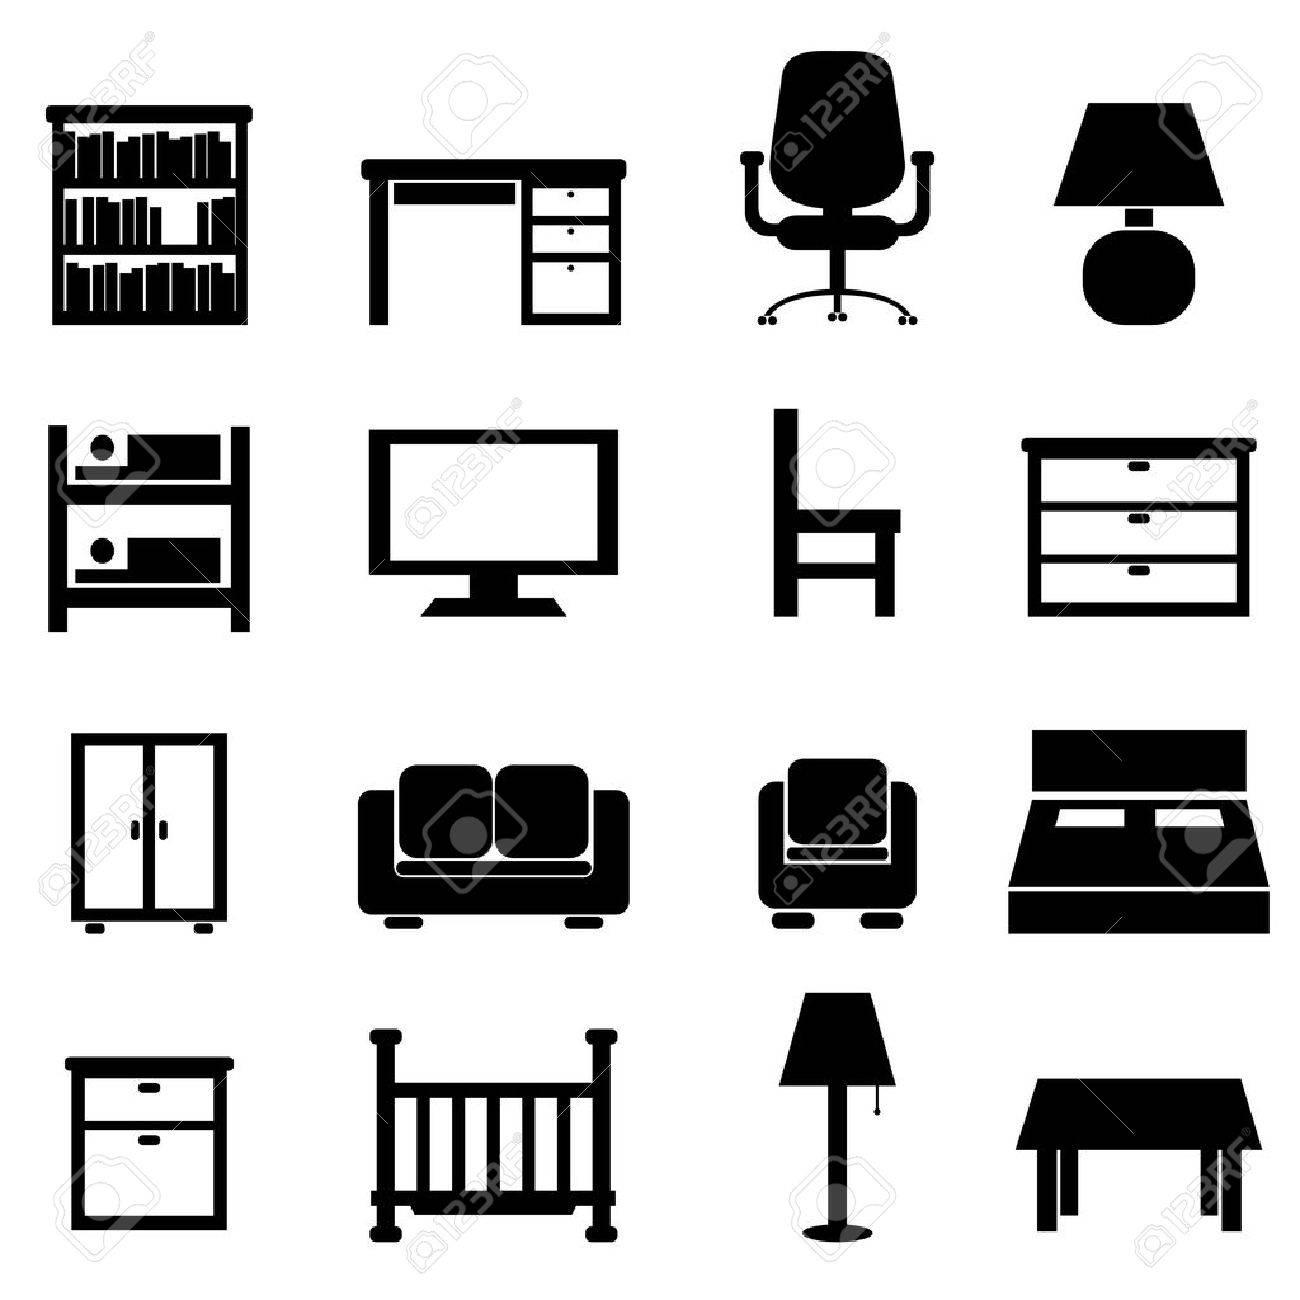 36,556 office furniture stock vector illustration and royalty free